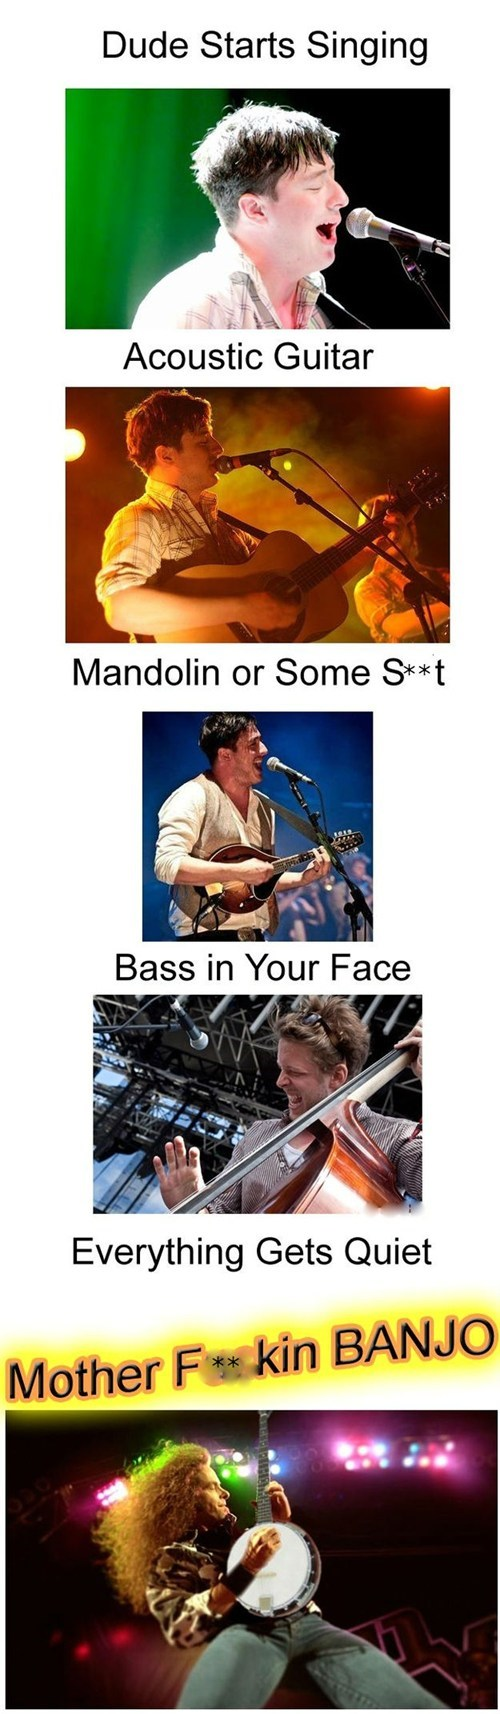 banjo mumford and sons formulas Music FAILS